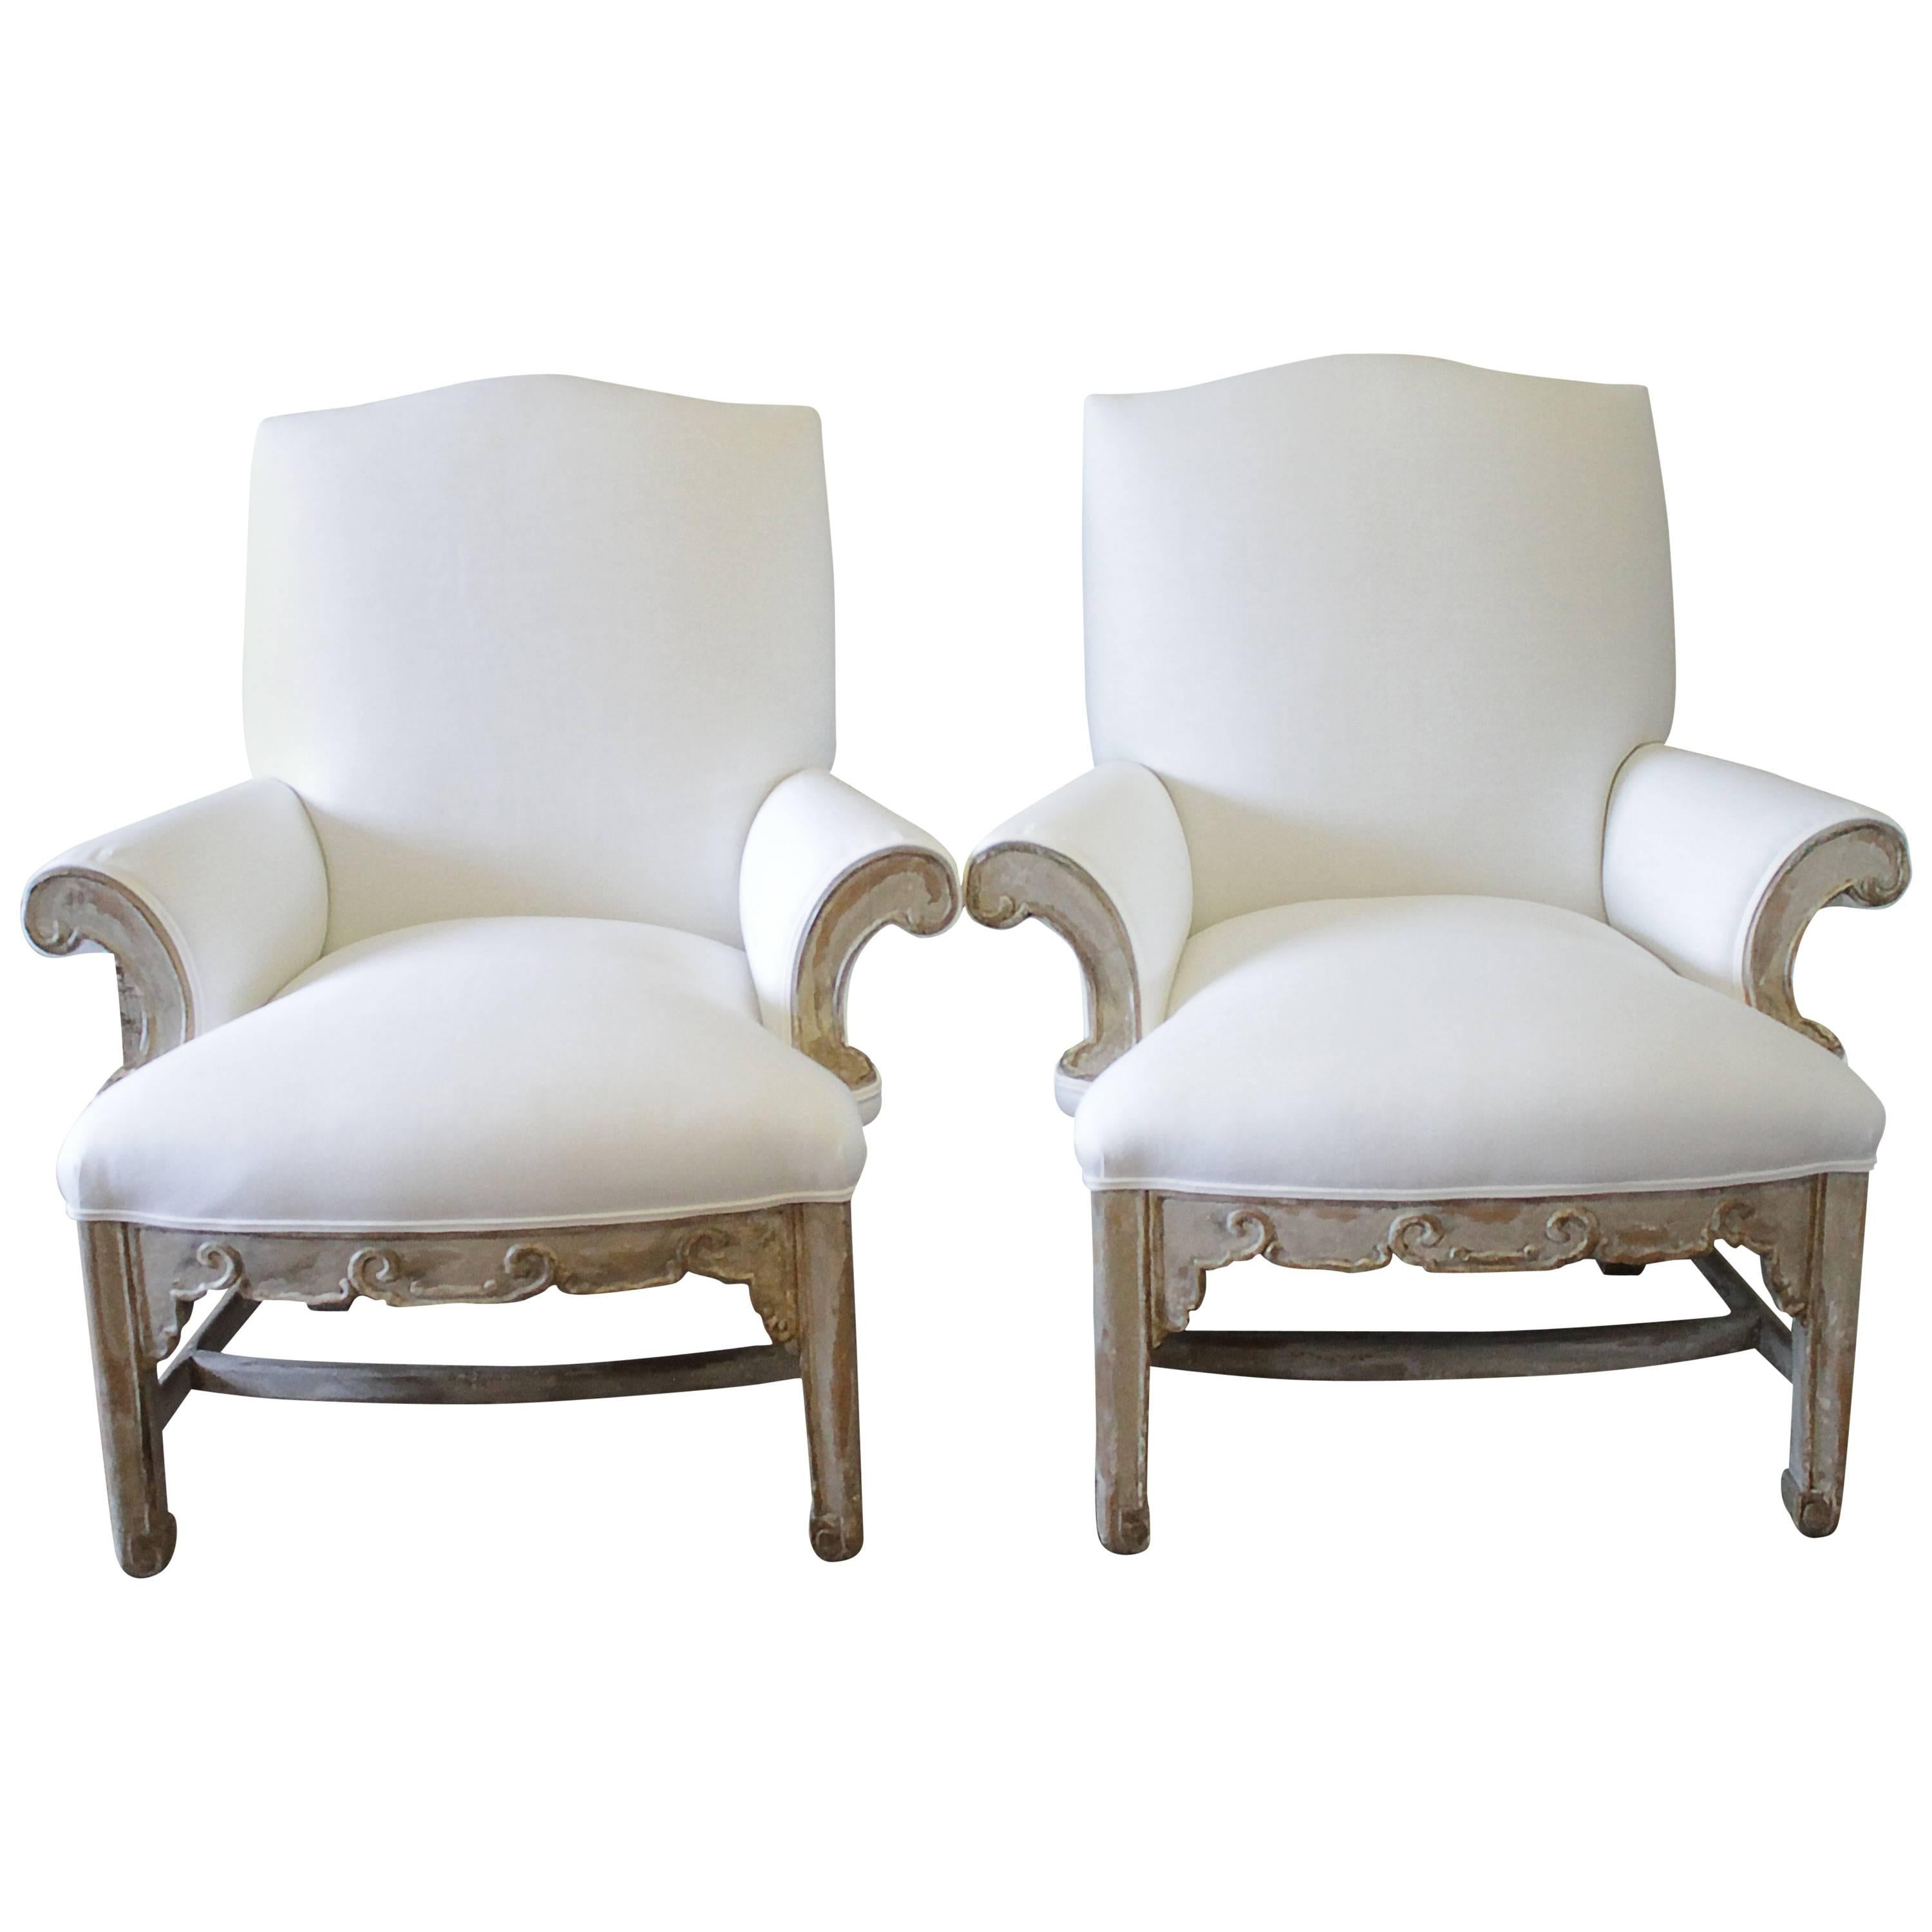 Pair Of Painted An Upholstered Chairs By William Switzer 1